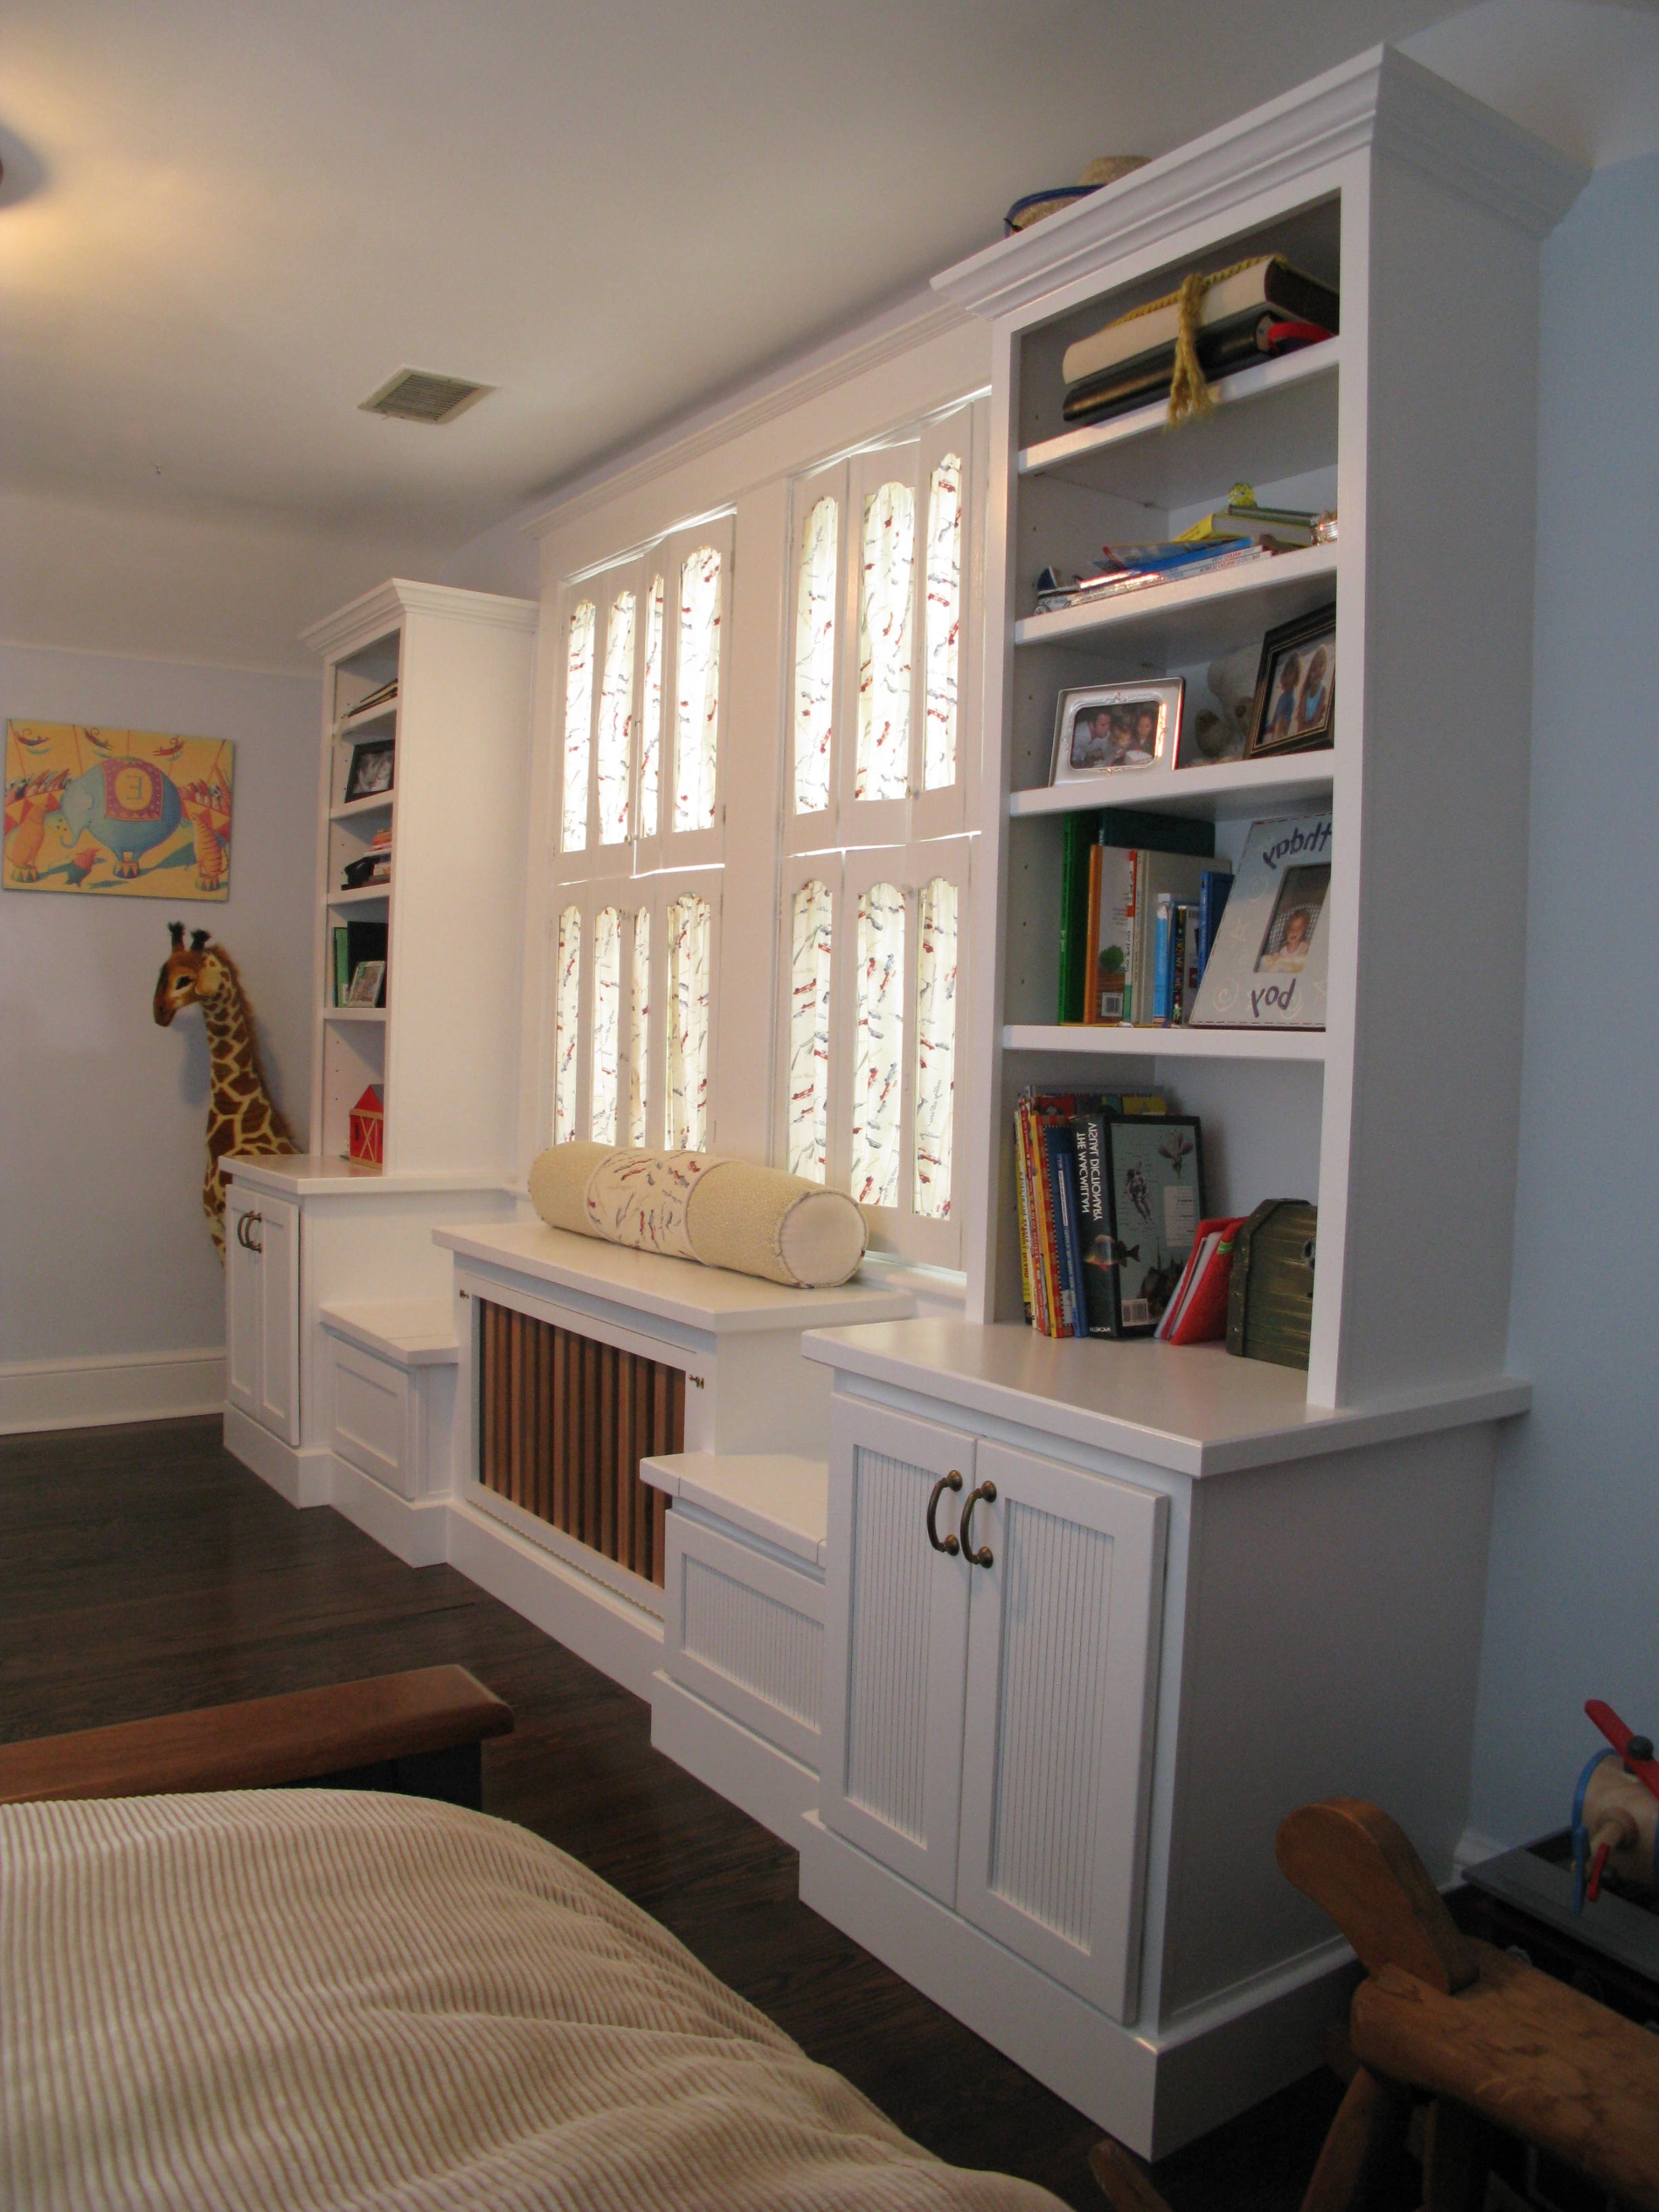 Radiator Bookcases Cabinets In Widely Used Custom Home Renovations Wasington Dc Archive – Four Brothers Llc (View 9 of 15)